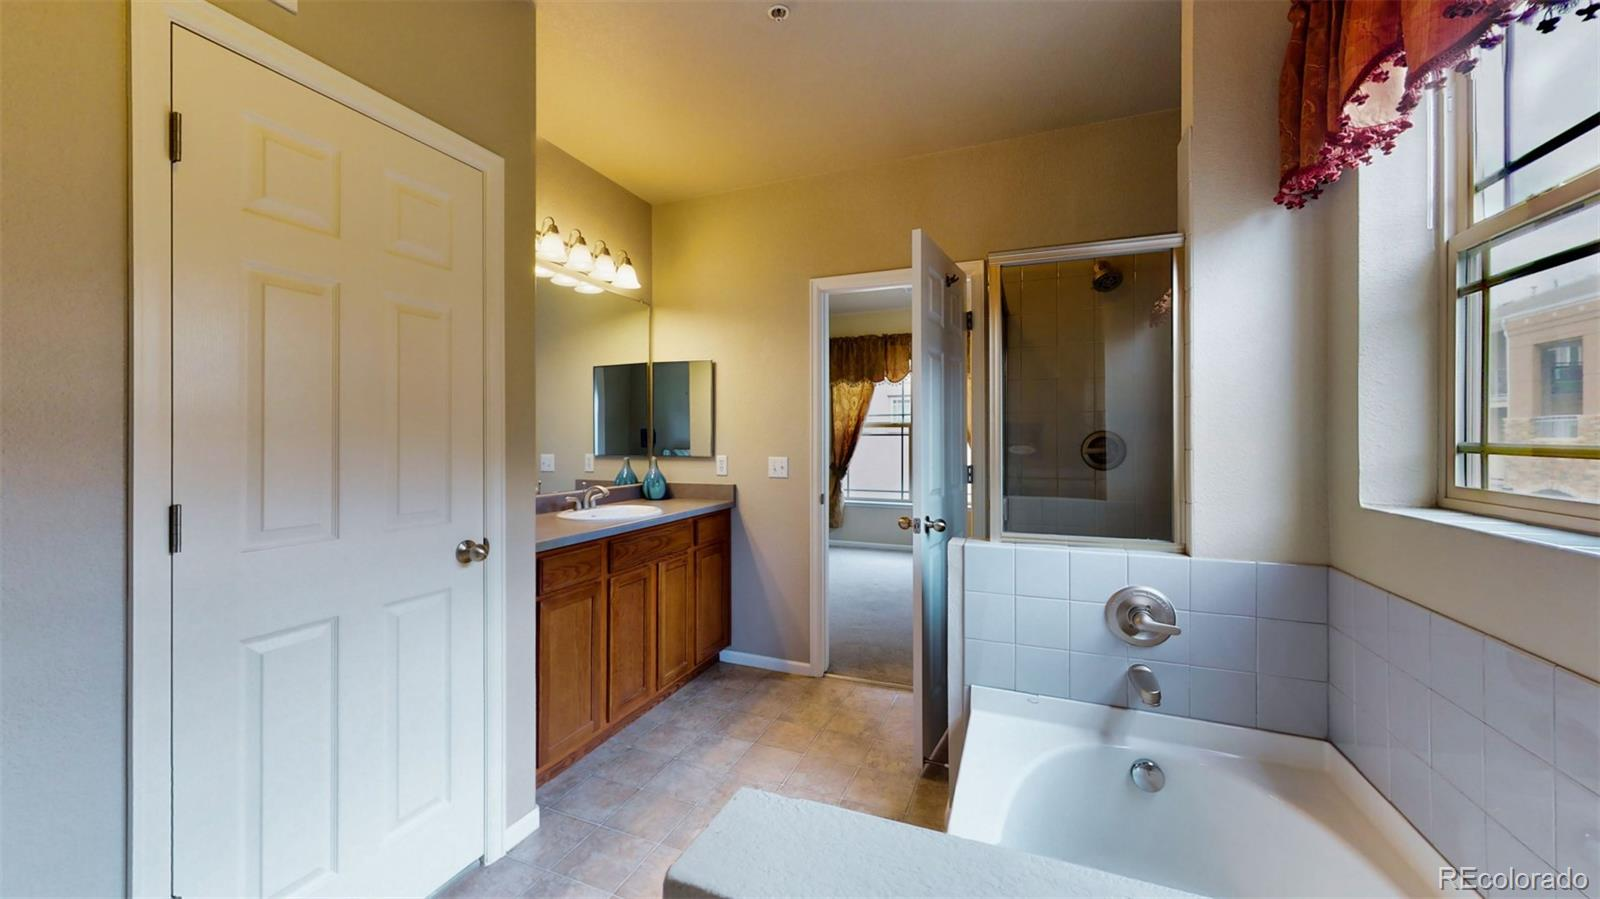 MLS# 3562922 - 14 - 8123 W 51st Place #202, Arvada, CO 80002